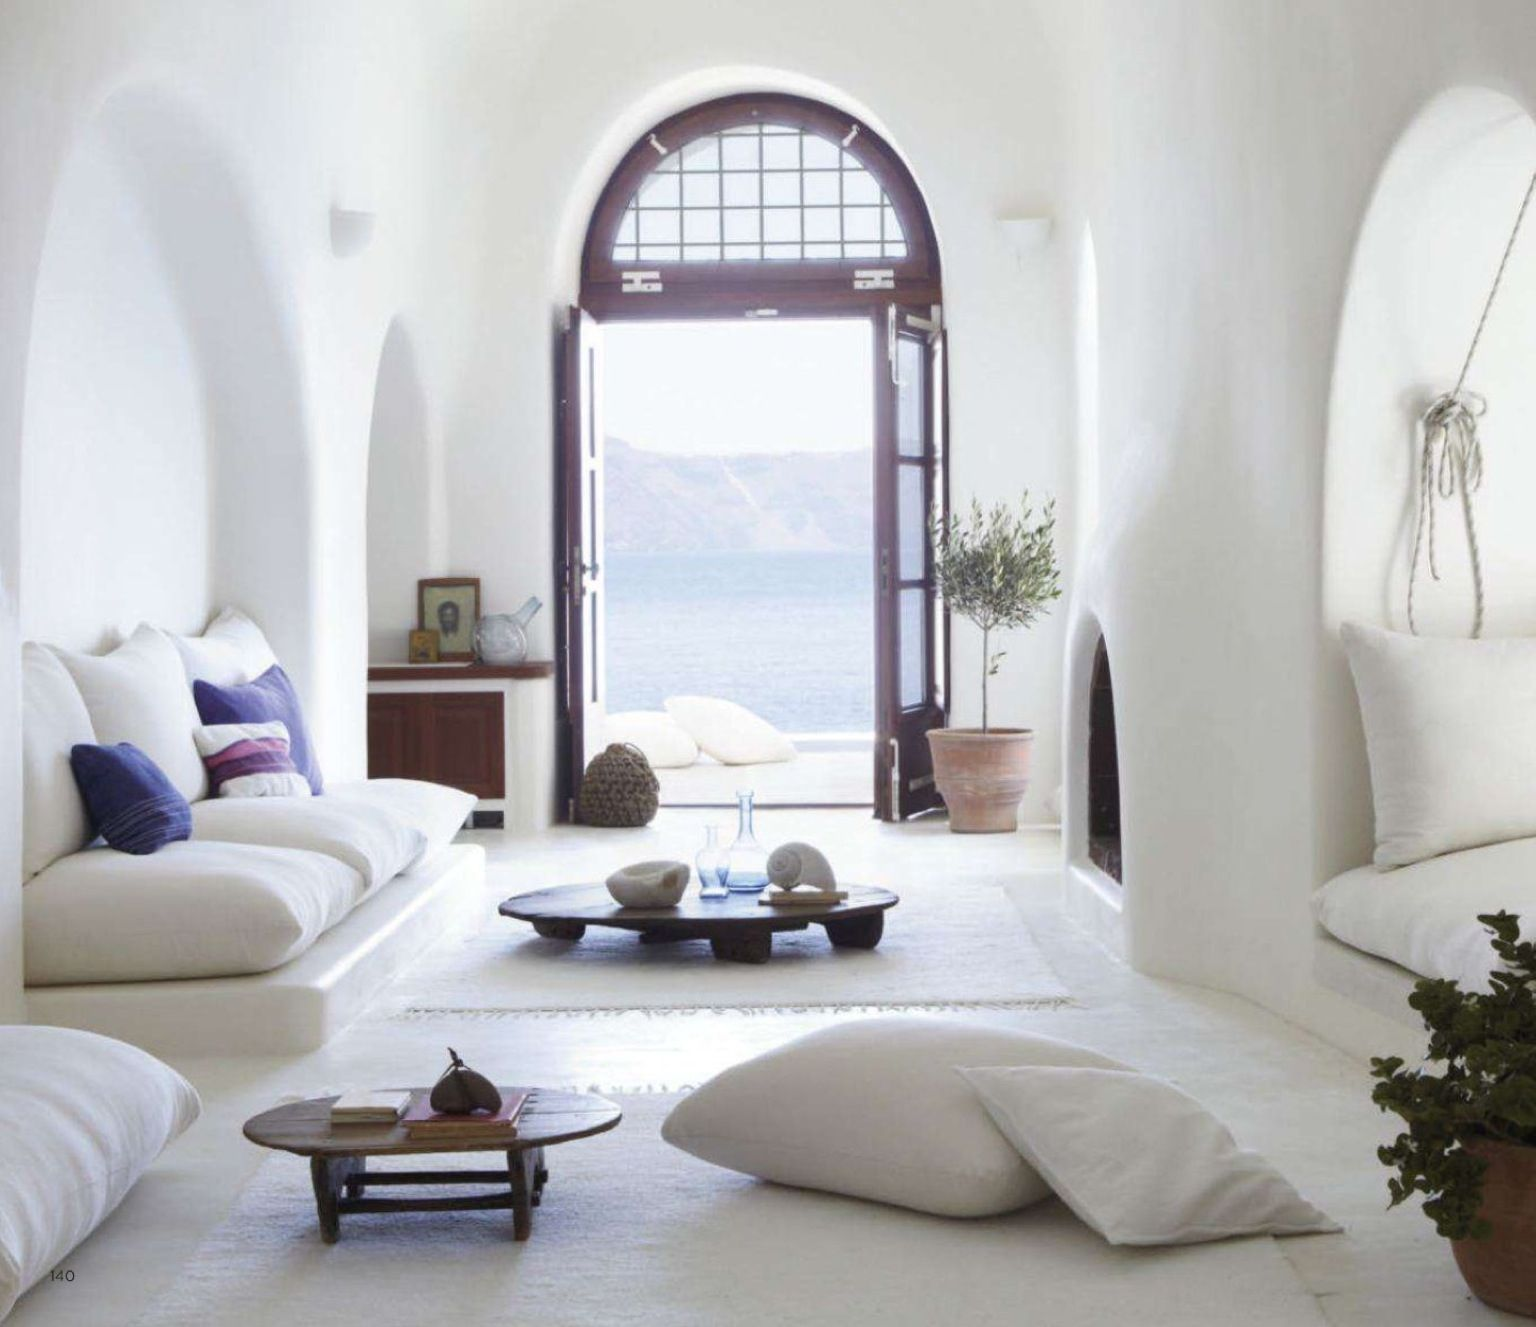 House Tour Is This The Most Relaxing Home You Ve Ever Seen